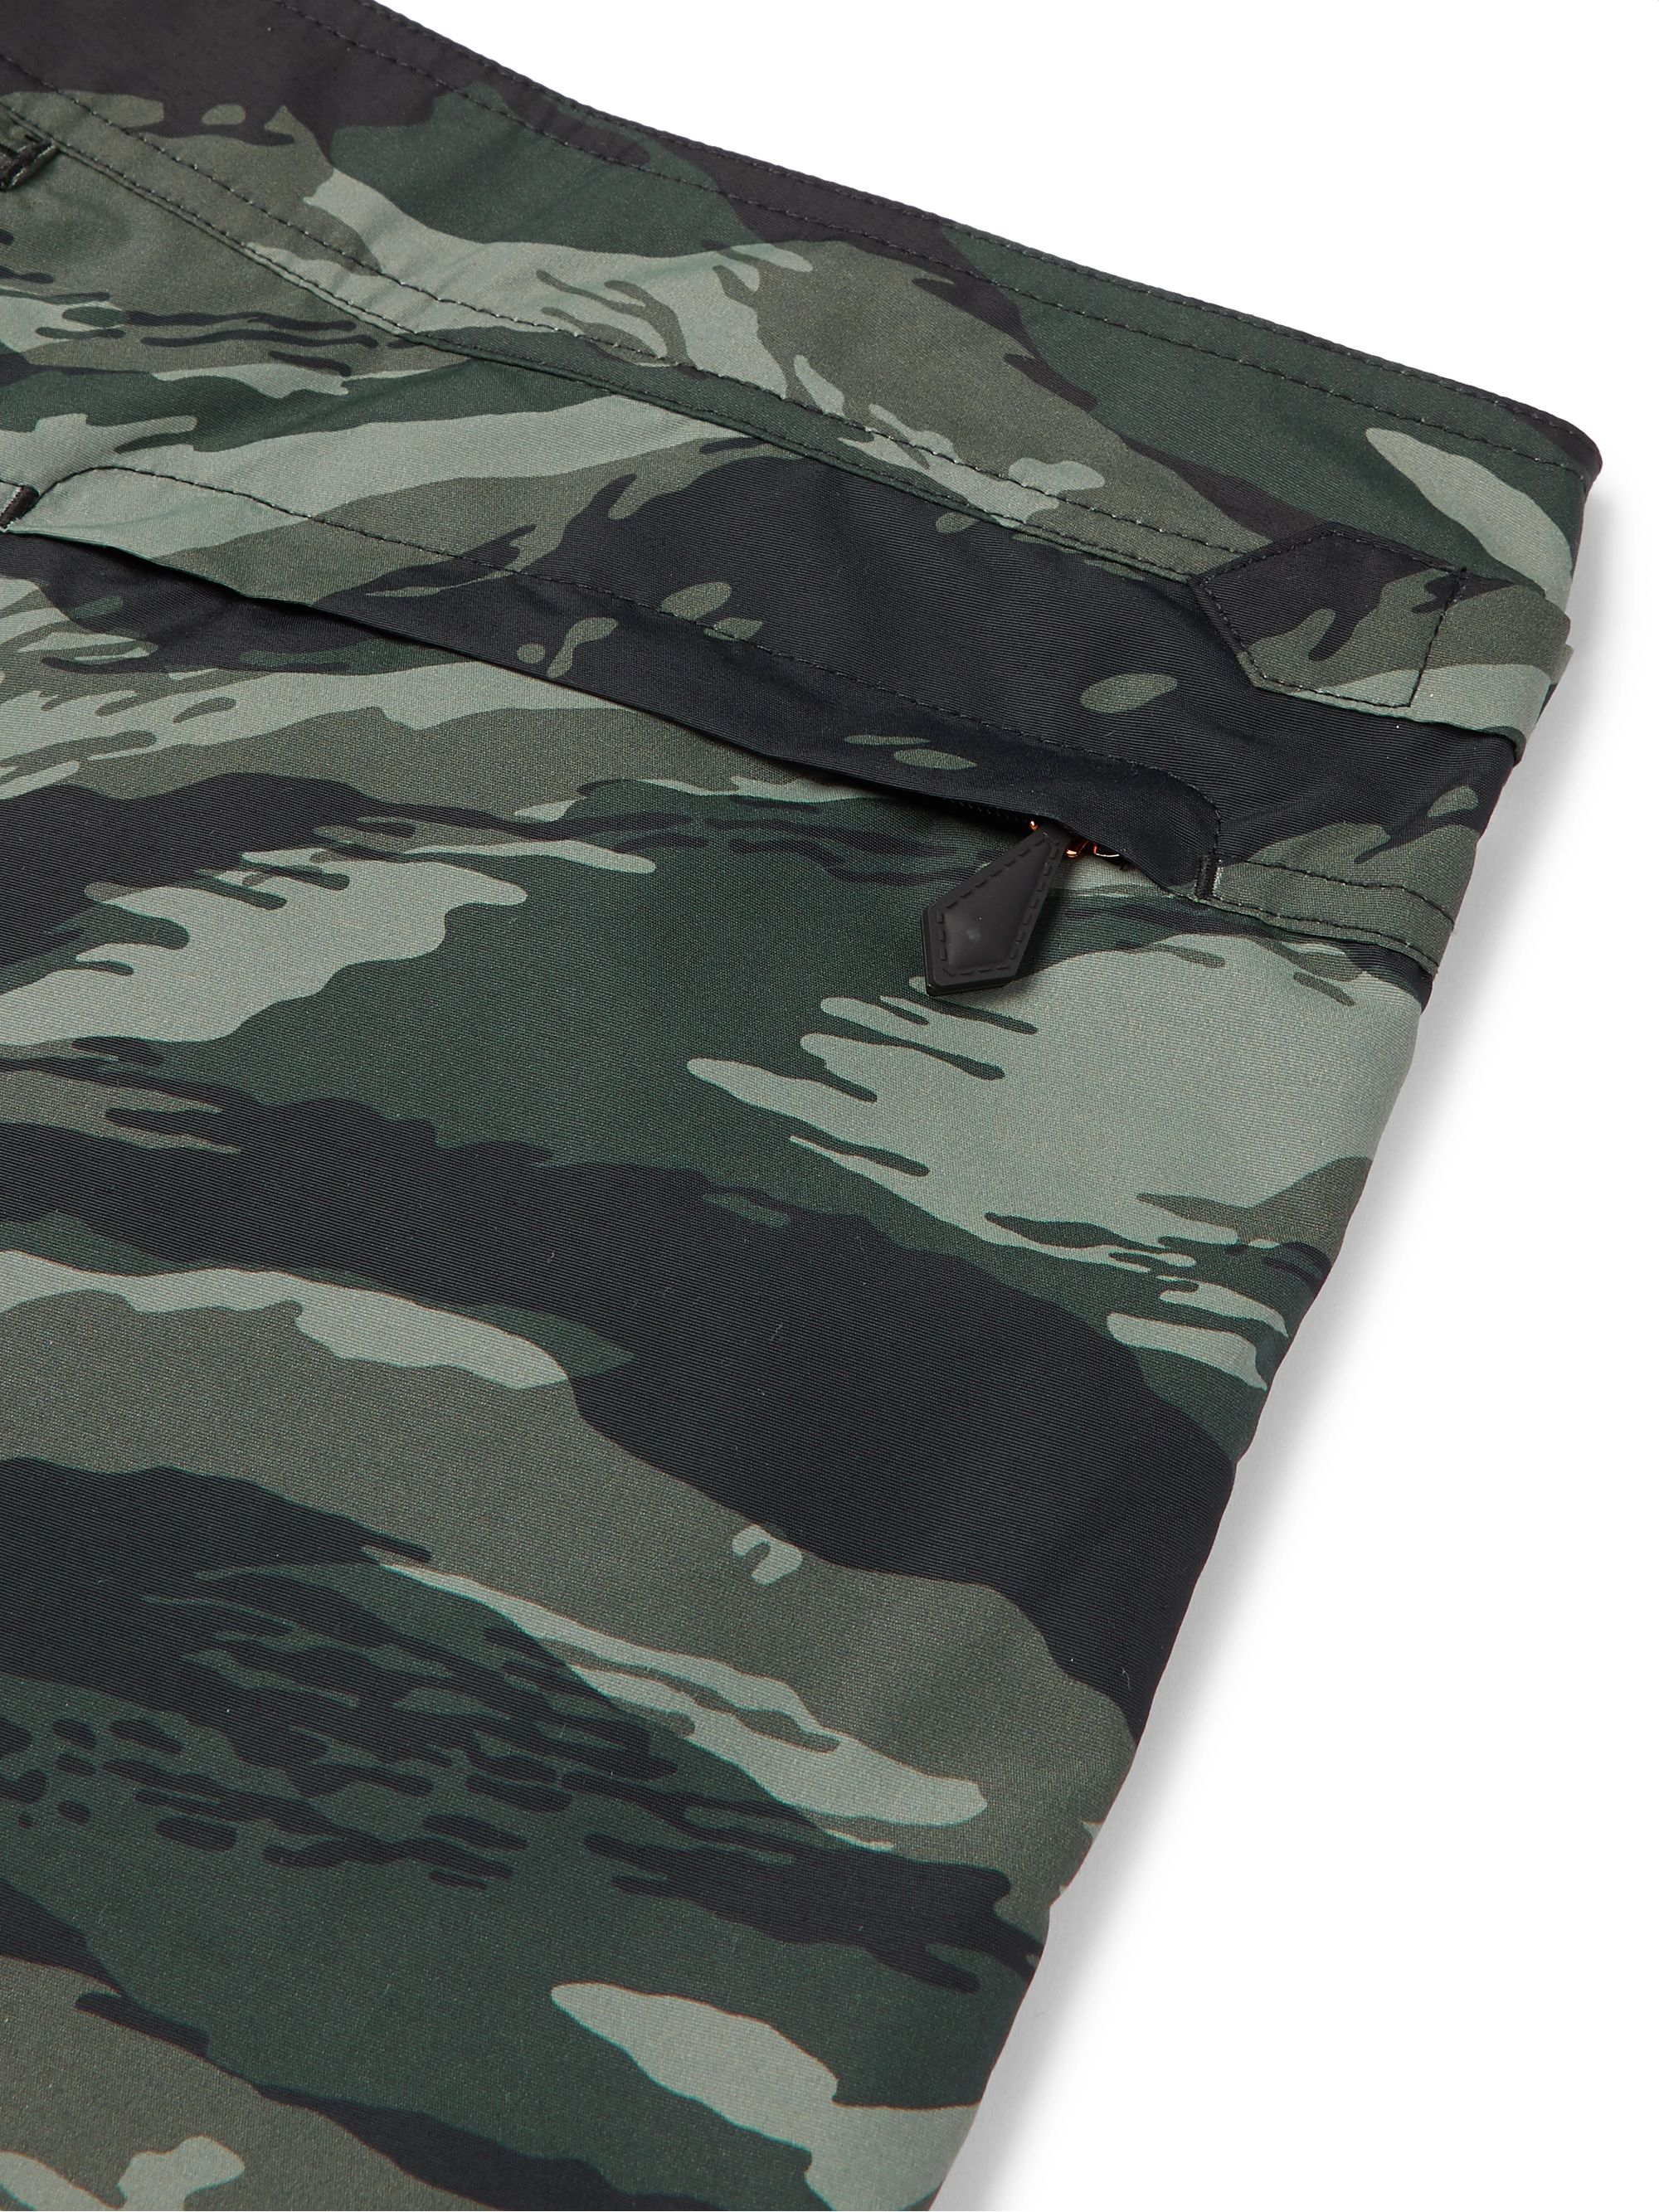 Details about  /Tom Ford Camouflage Blouson Homme 48 Khaki Viscosa  Camouflage